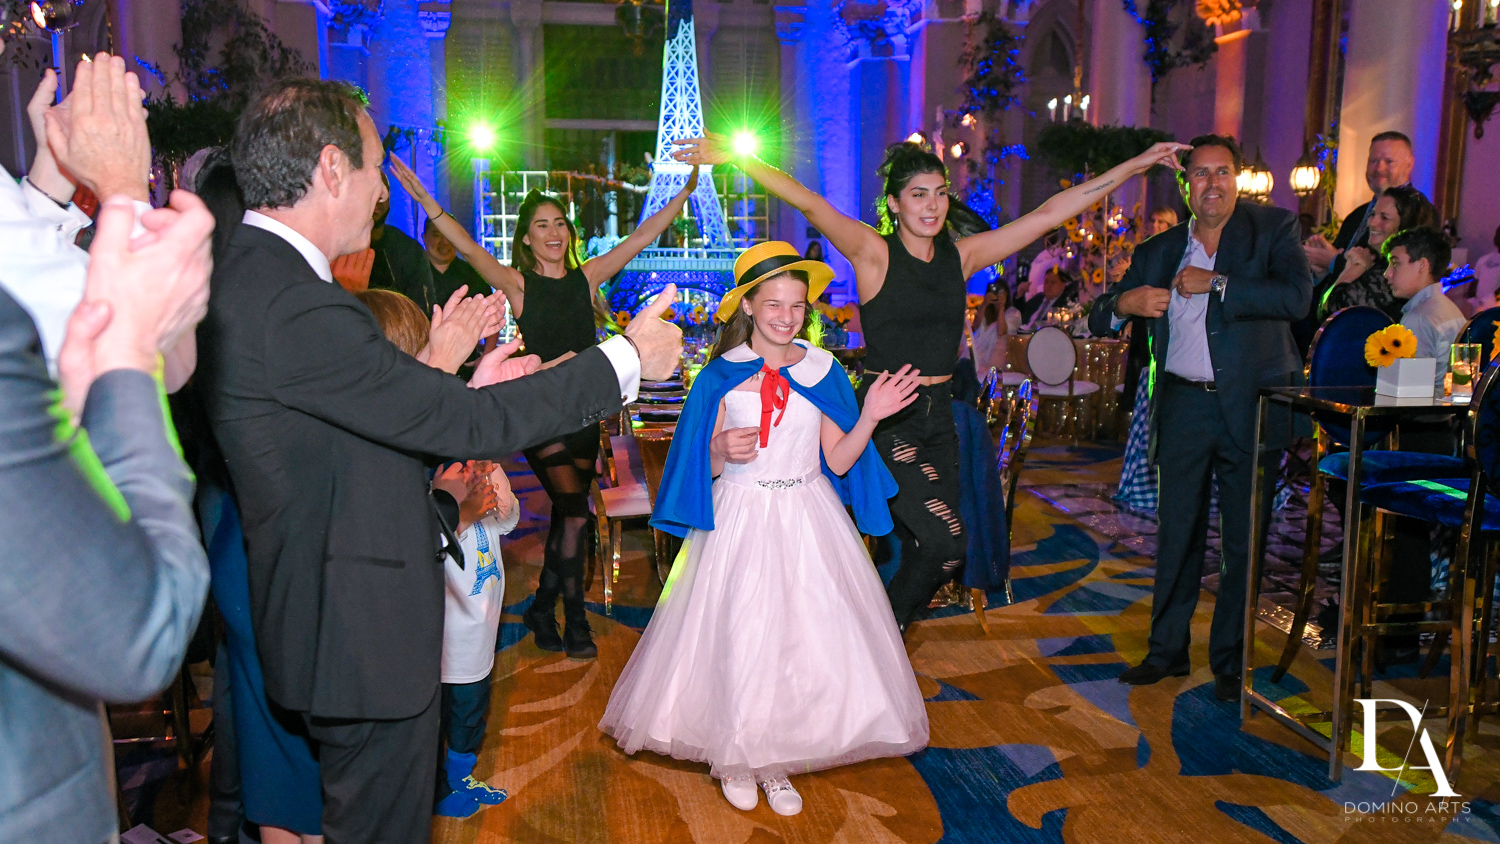 best party entrance at Madeline in Paris theme Bat Mitzvah at Boca Raton Resort and Club by Domino Arts Photography